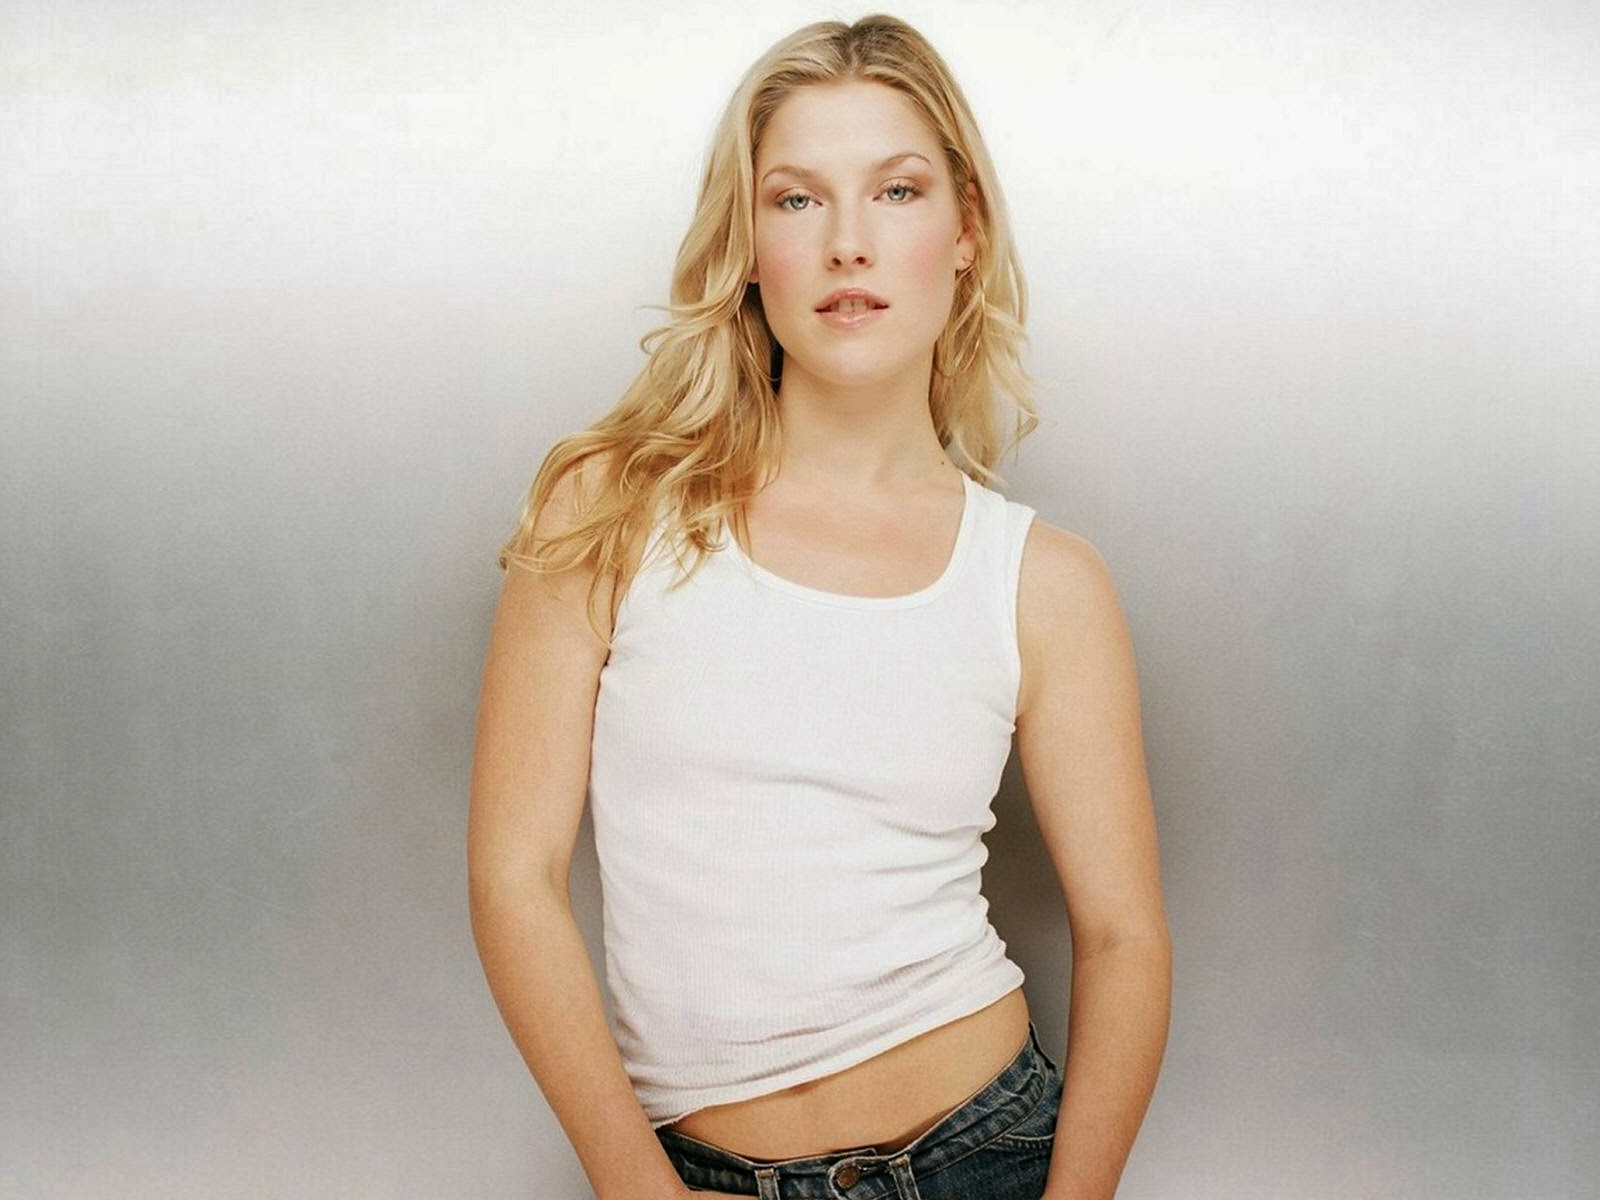 UNSEEN HOT SPICY: Ali Larter Sexy Hot Pics